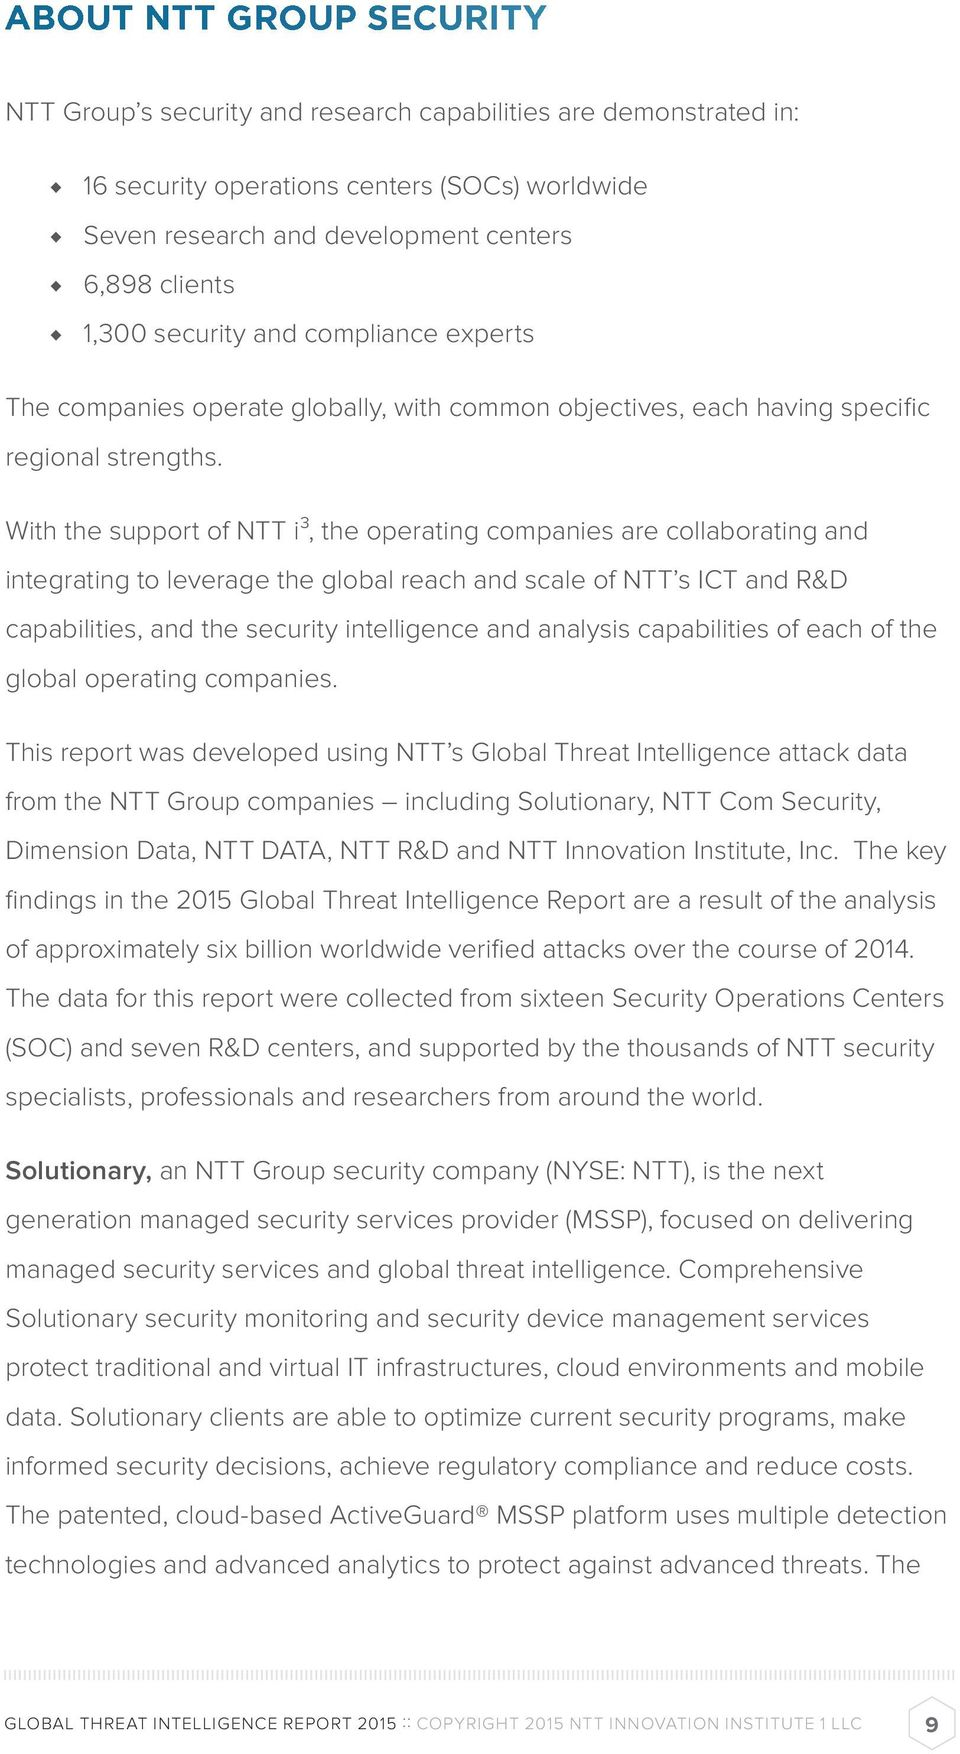 With the support of NTT i³, the operating companies are collaborating and integrating to leverage the global reach and scale of NTT s ICT and R&D capabilities, and the security intelligence and